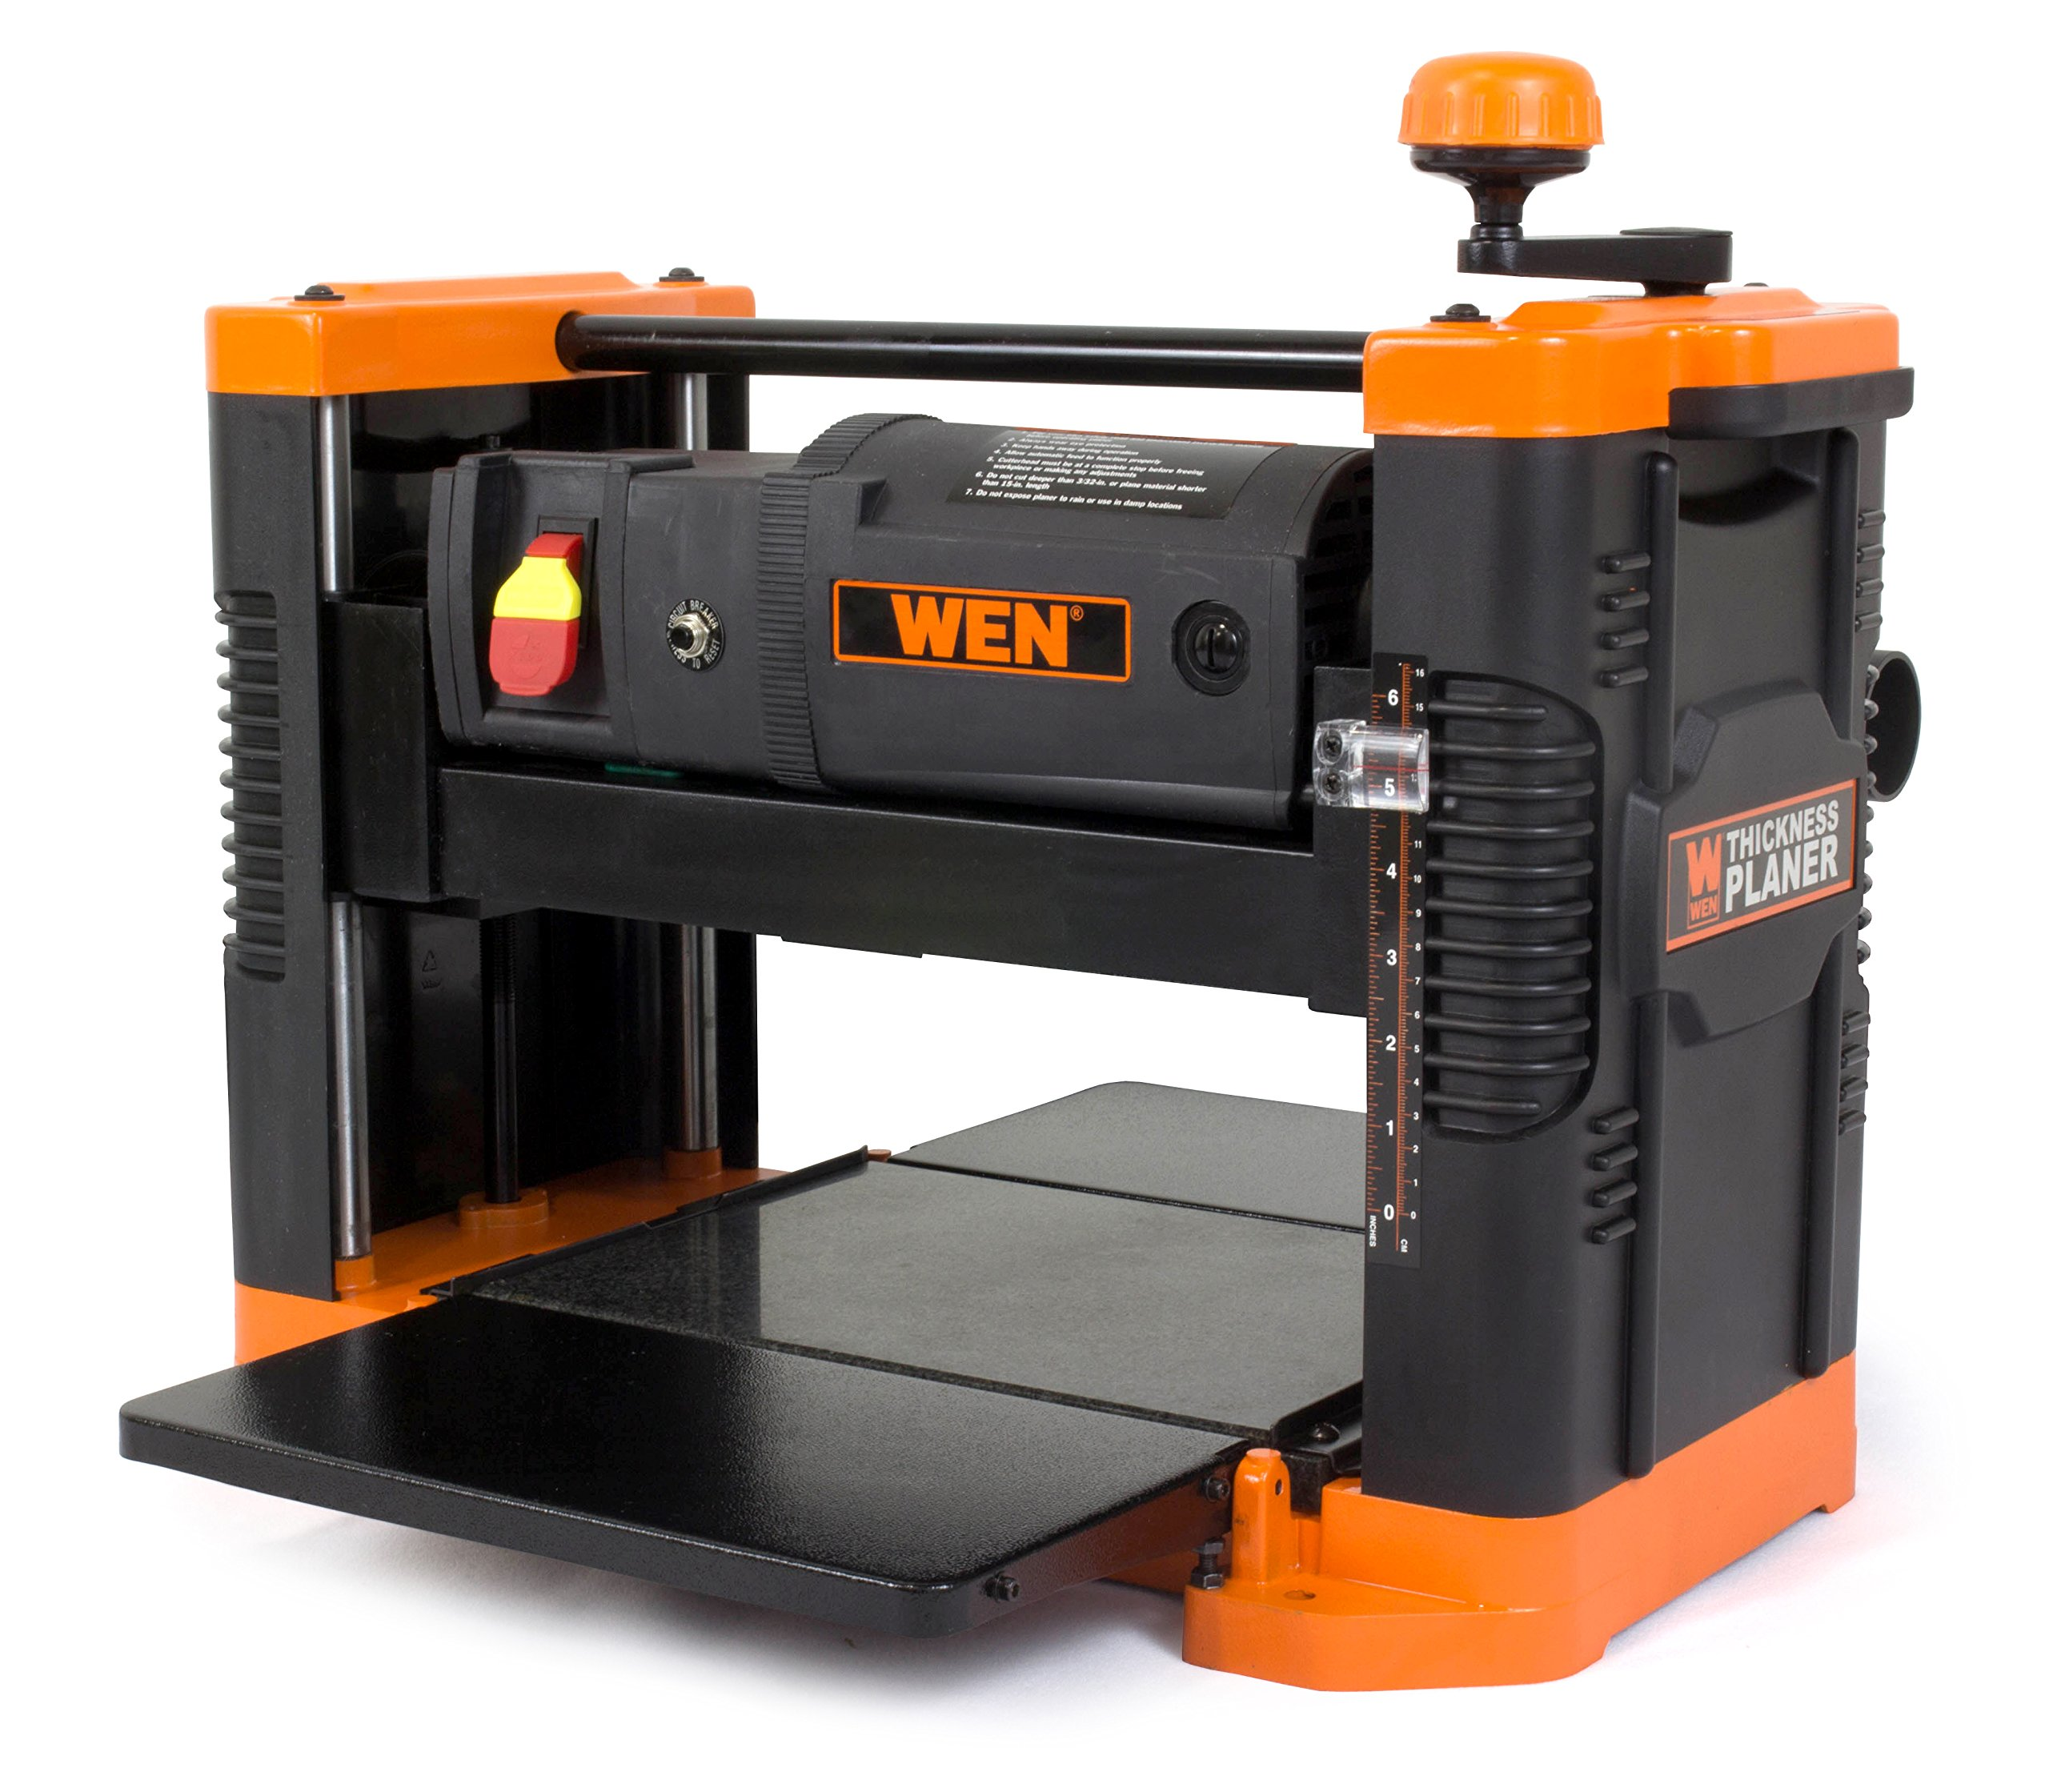 WEN 6550T Corded Benchtop Thickness